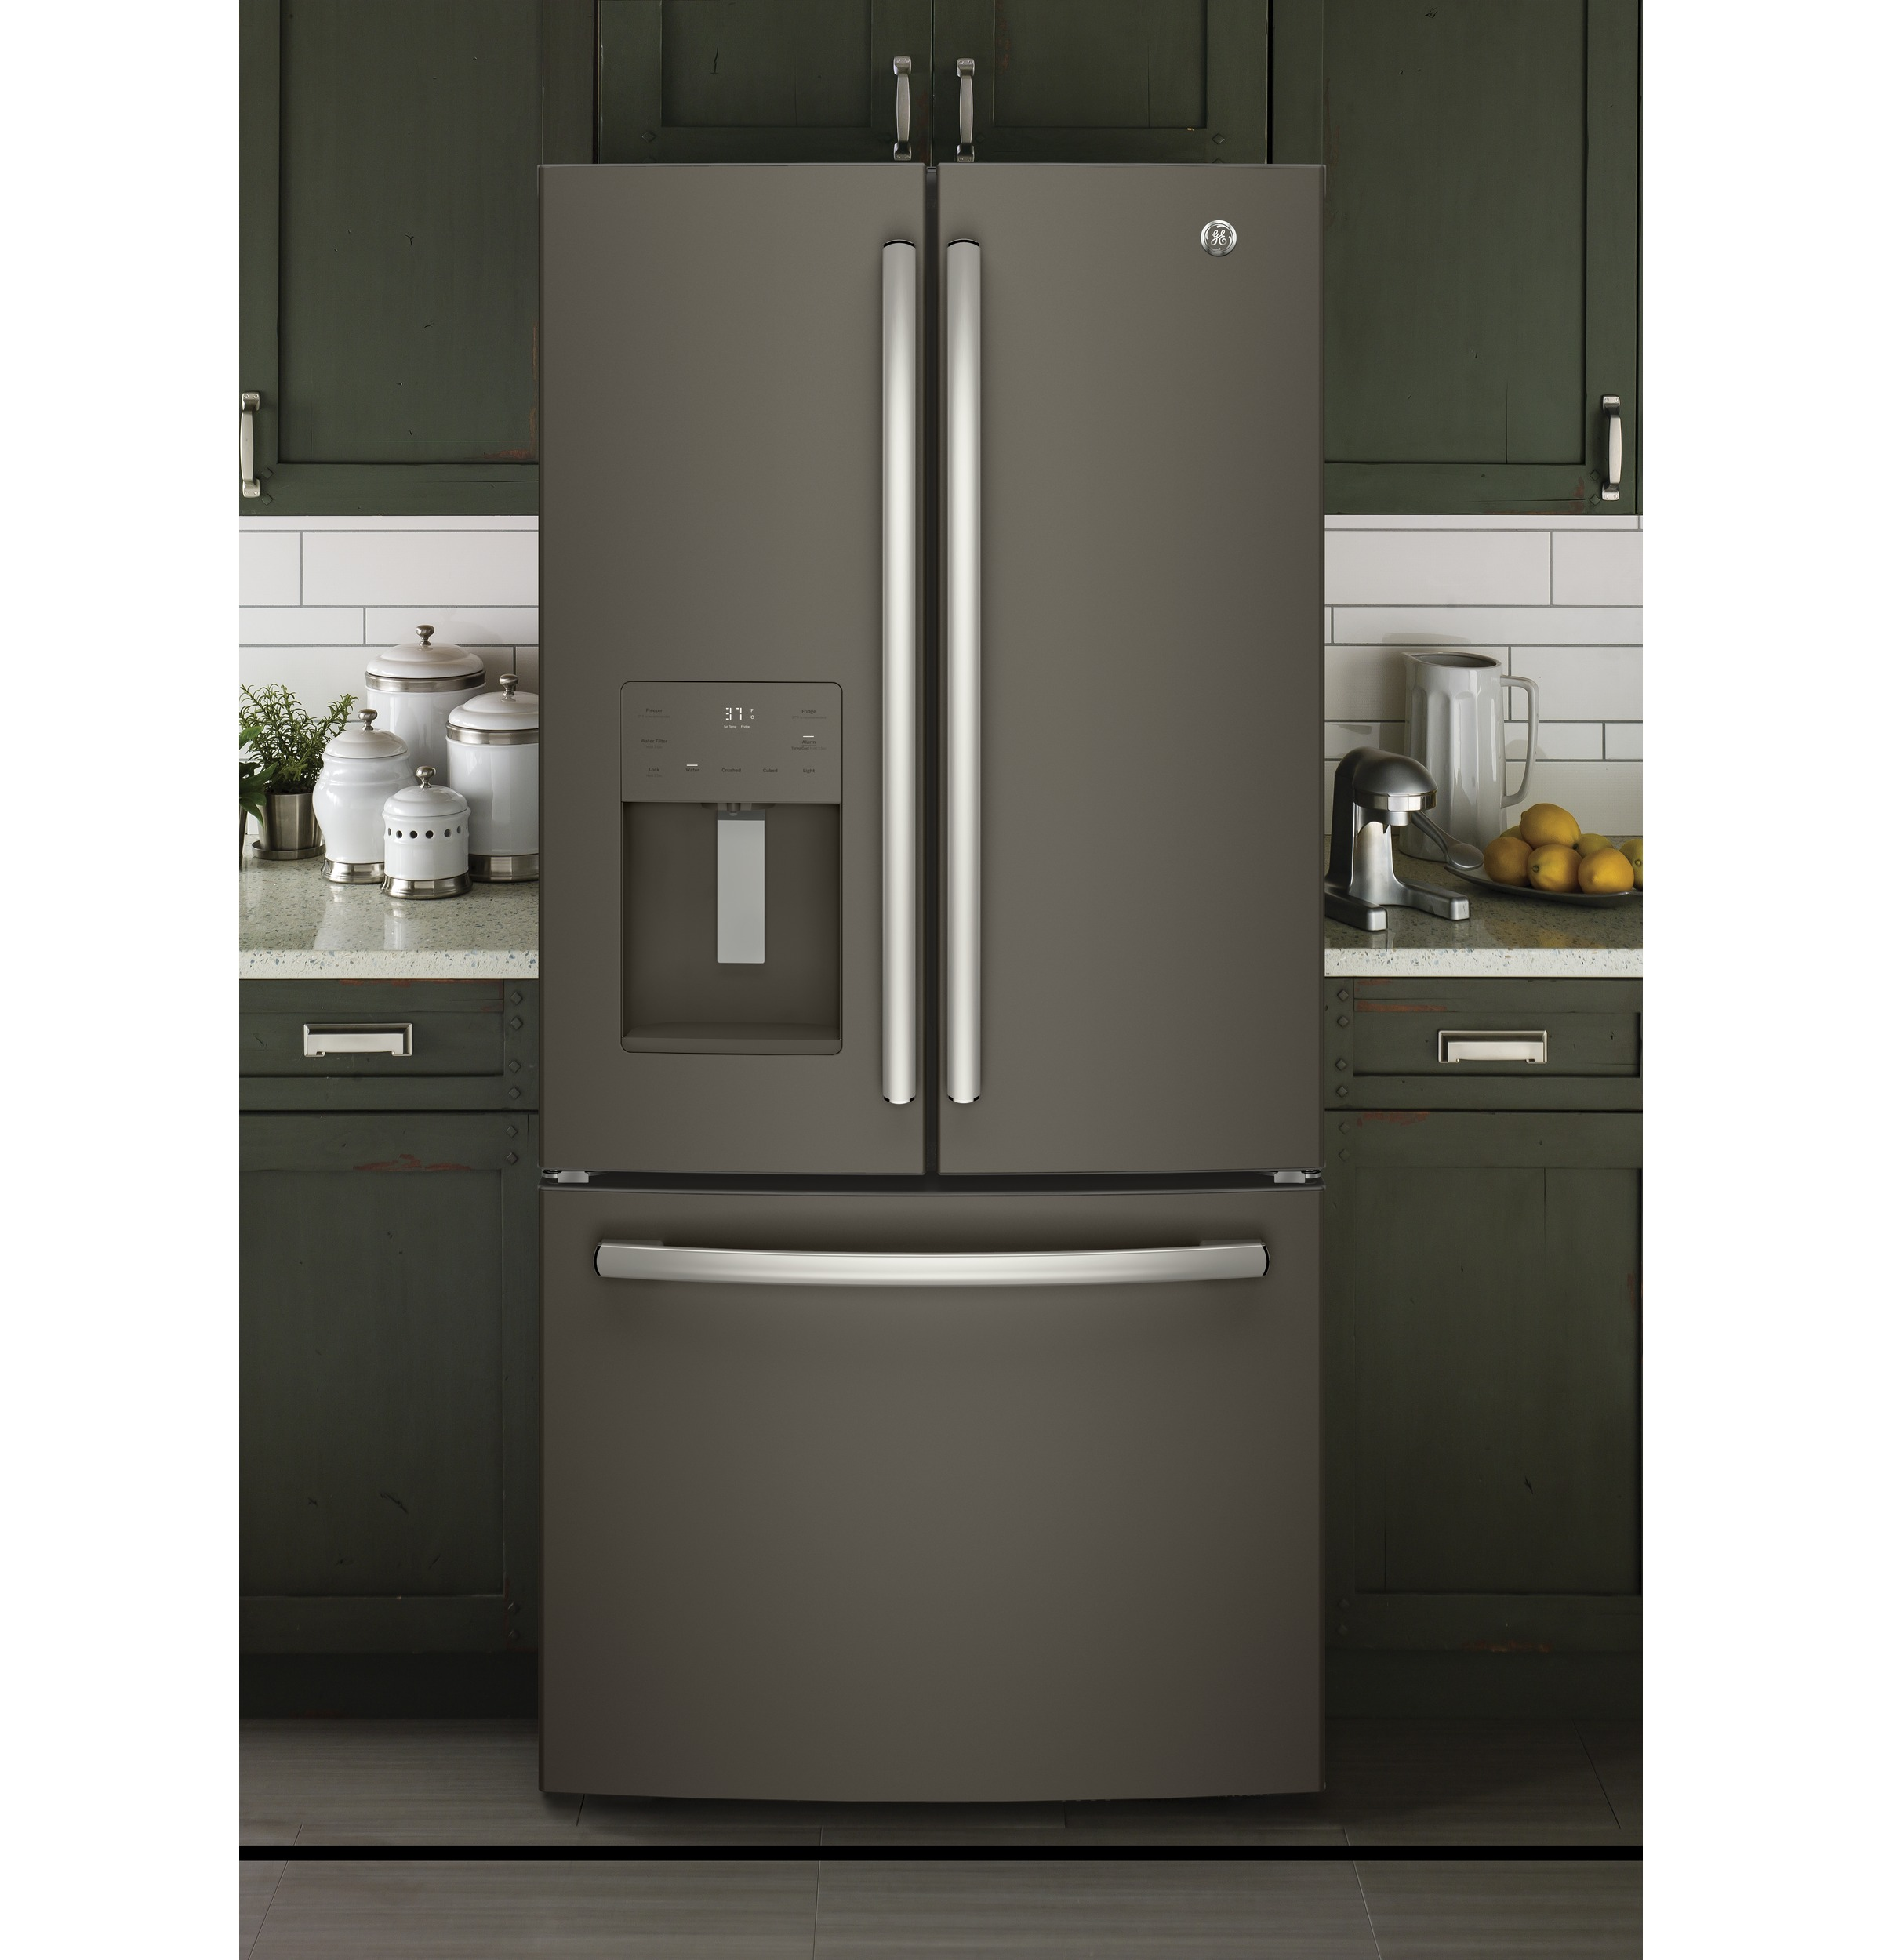 Model: GFE24JMKES | GE® ENERGY STAR® 23.7 Cu. Ft. French-Door Refrigerator